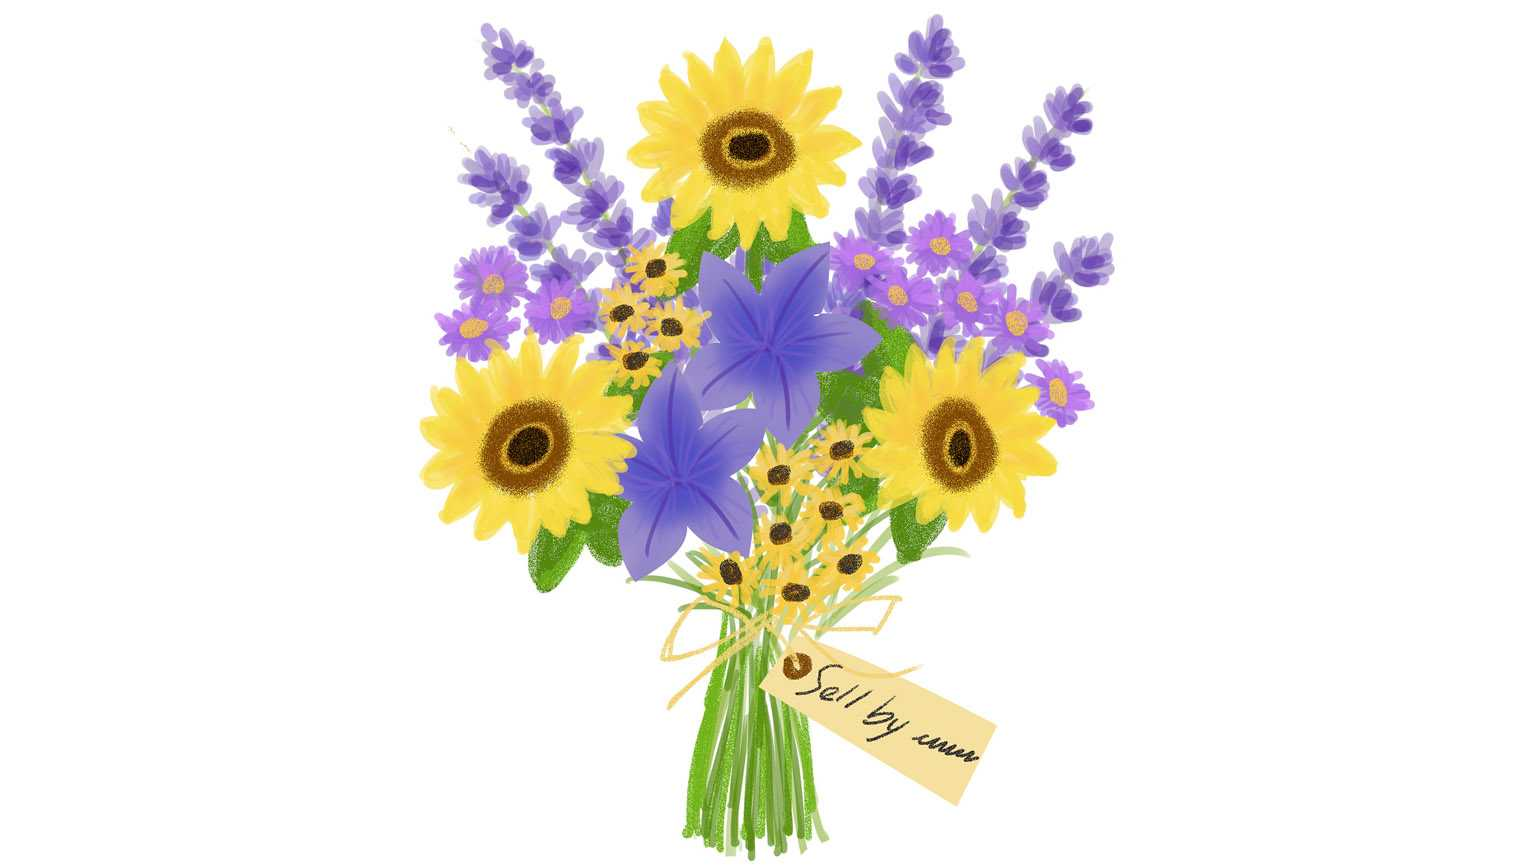 An artist rendering of a colorful bouquet which included sunflowers, violets, and daisies.